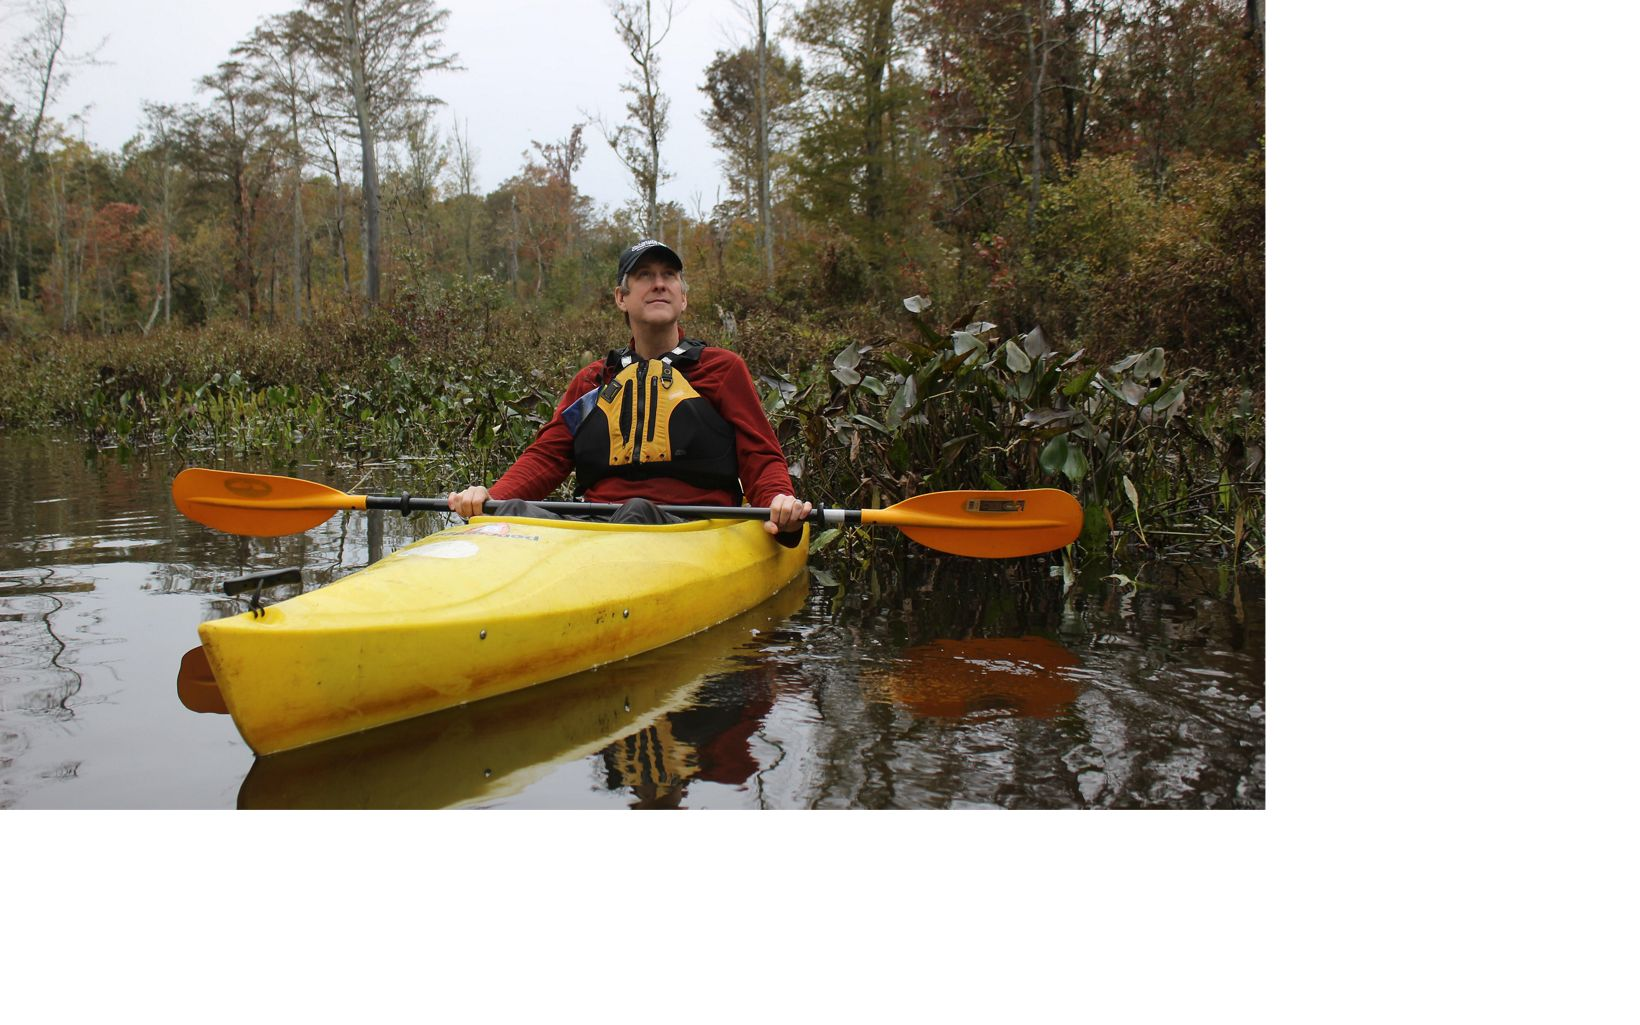 Danny White takes a moment to enjoy the beauty of Dragon Run during a fall paddle with Friends of Dragon Run.